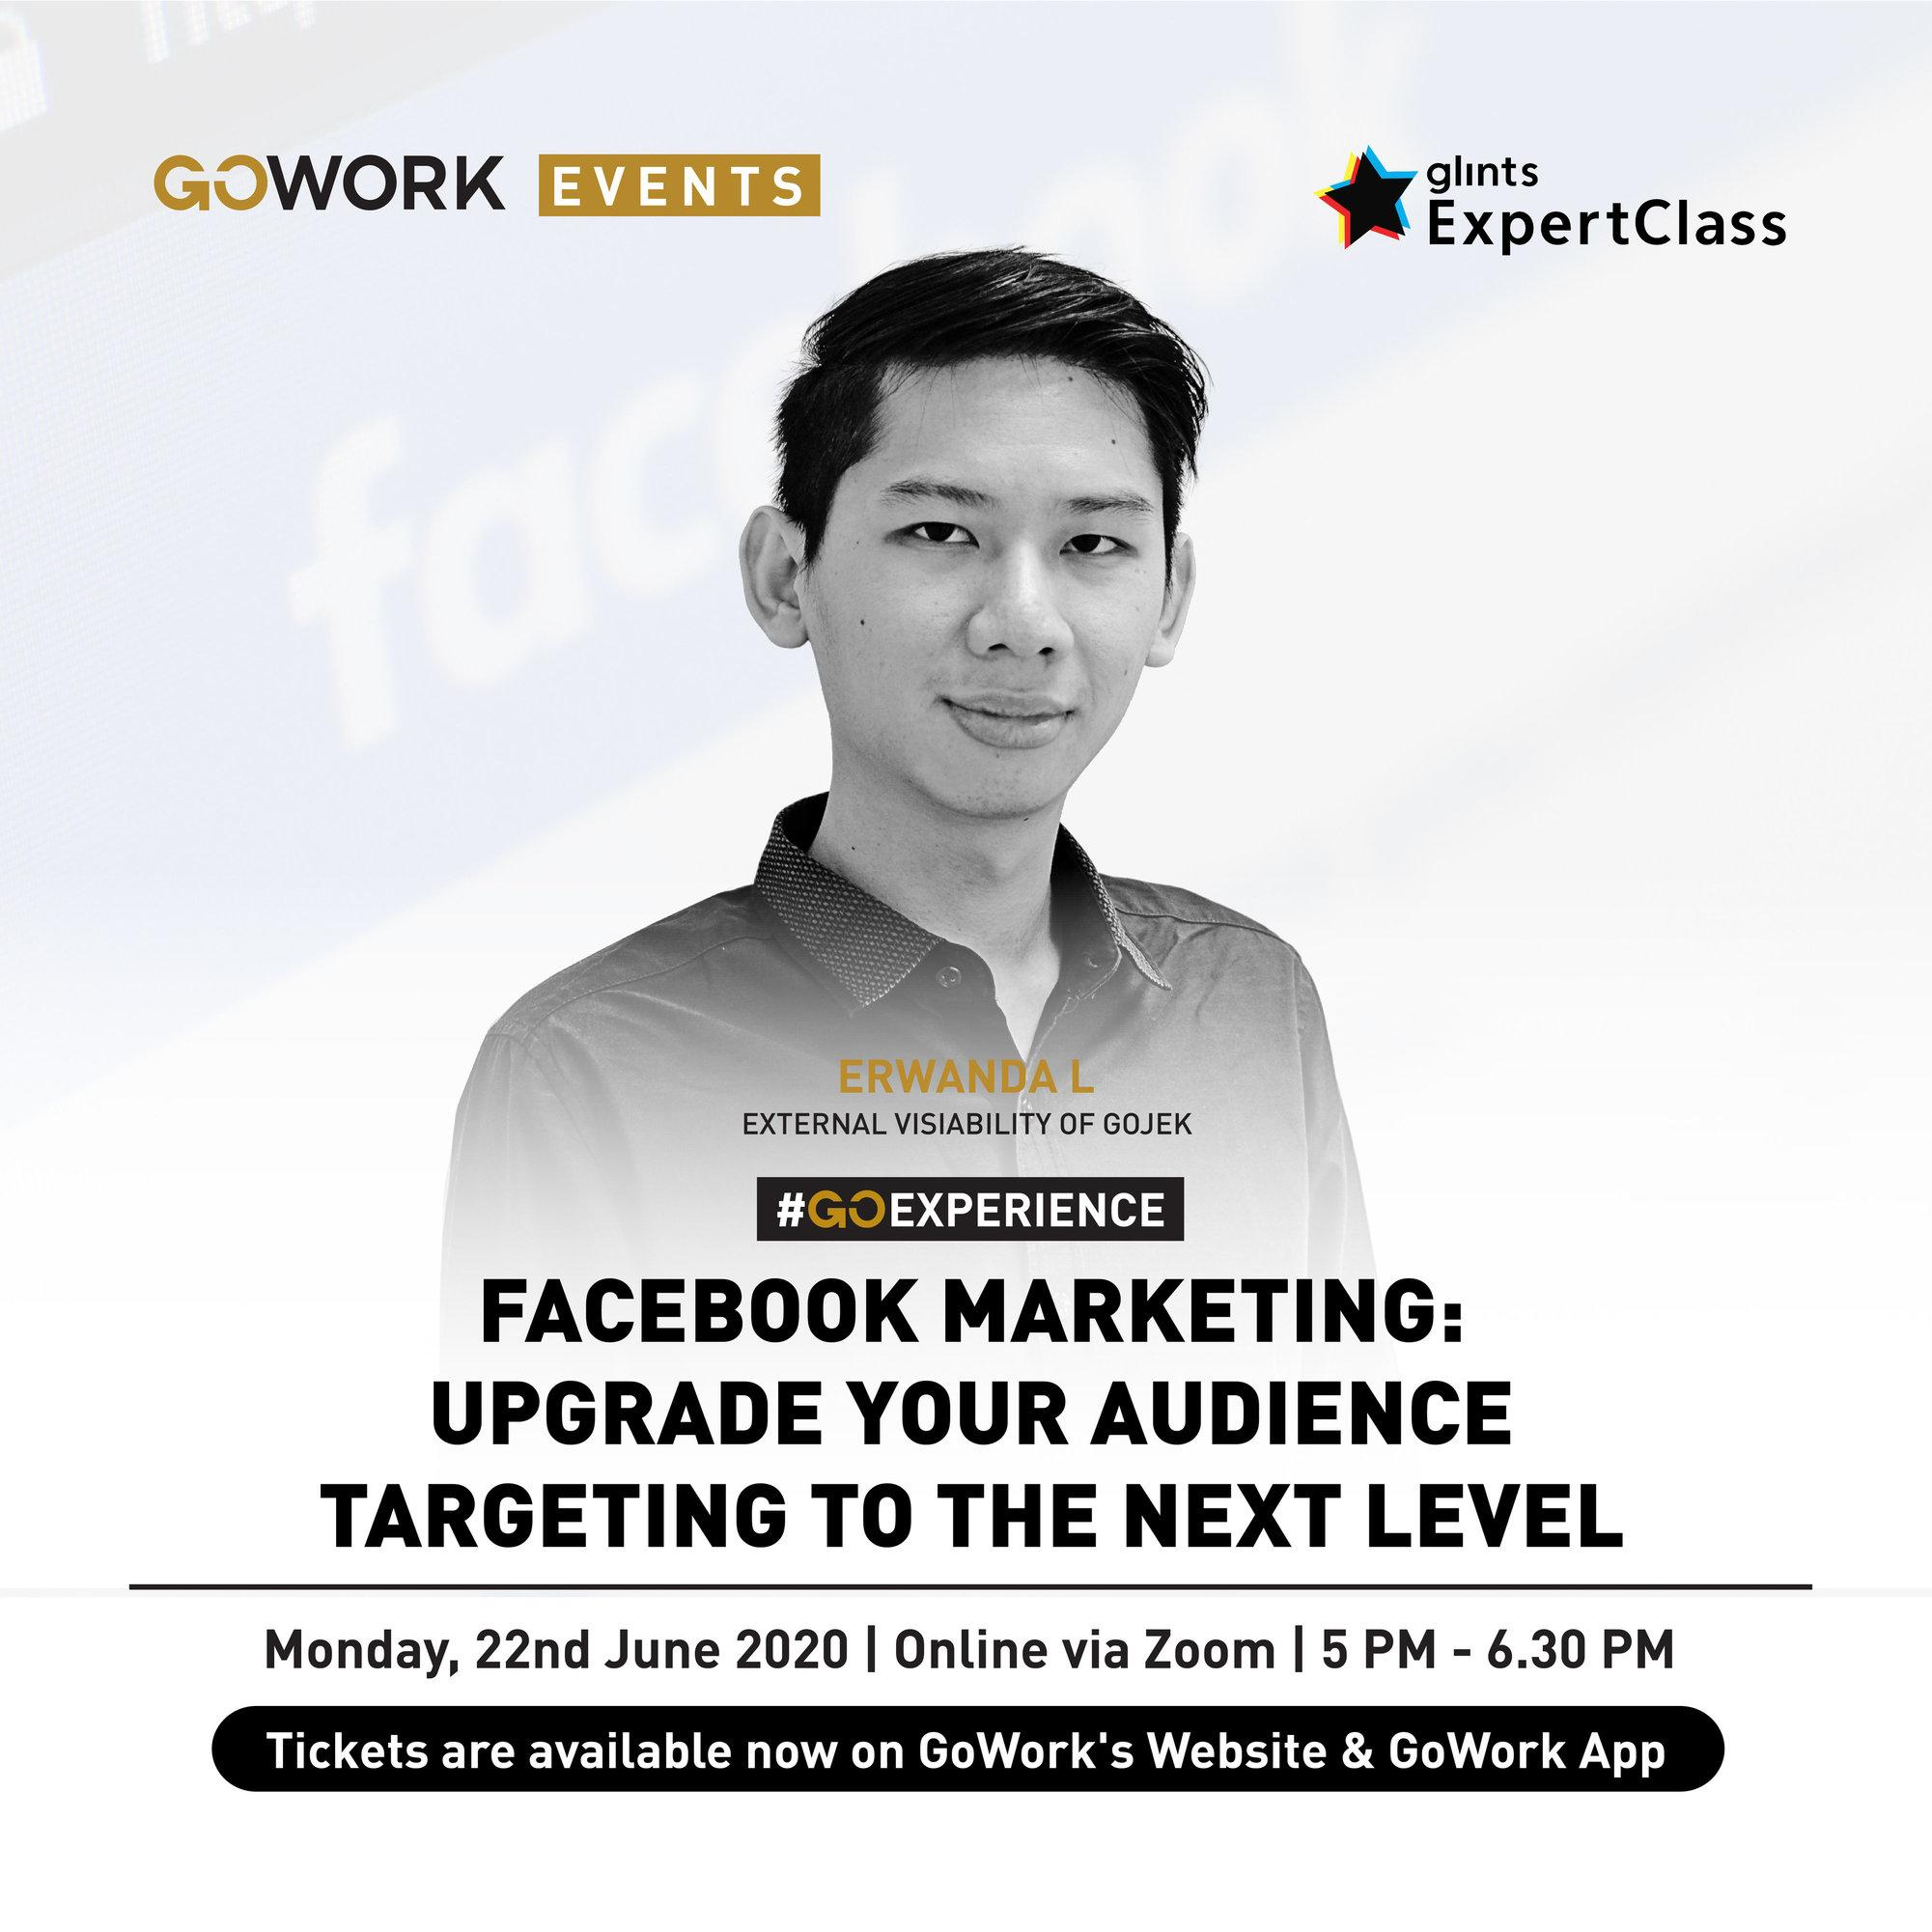 Facebook Marketing: Upgrade Your Audience Targeting To The Next Level